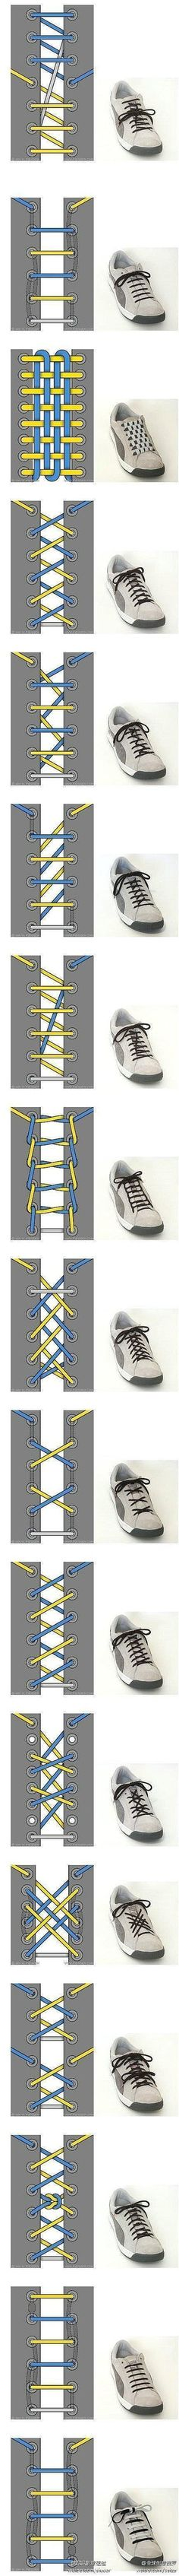 Diffrent ways to tie your shoes